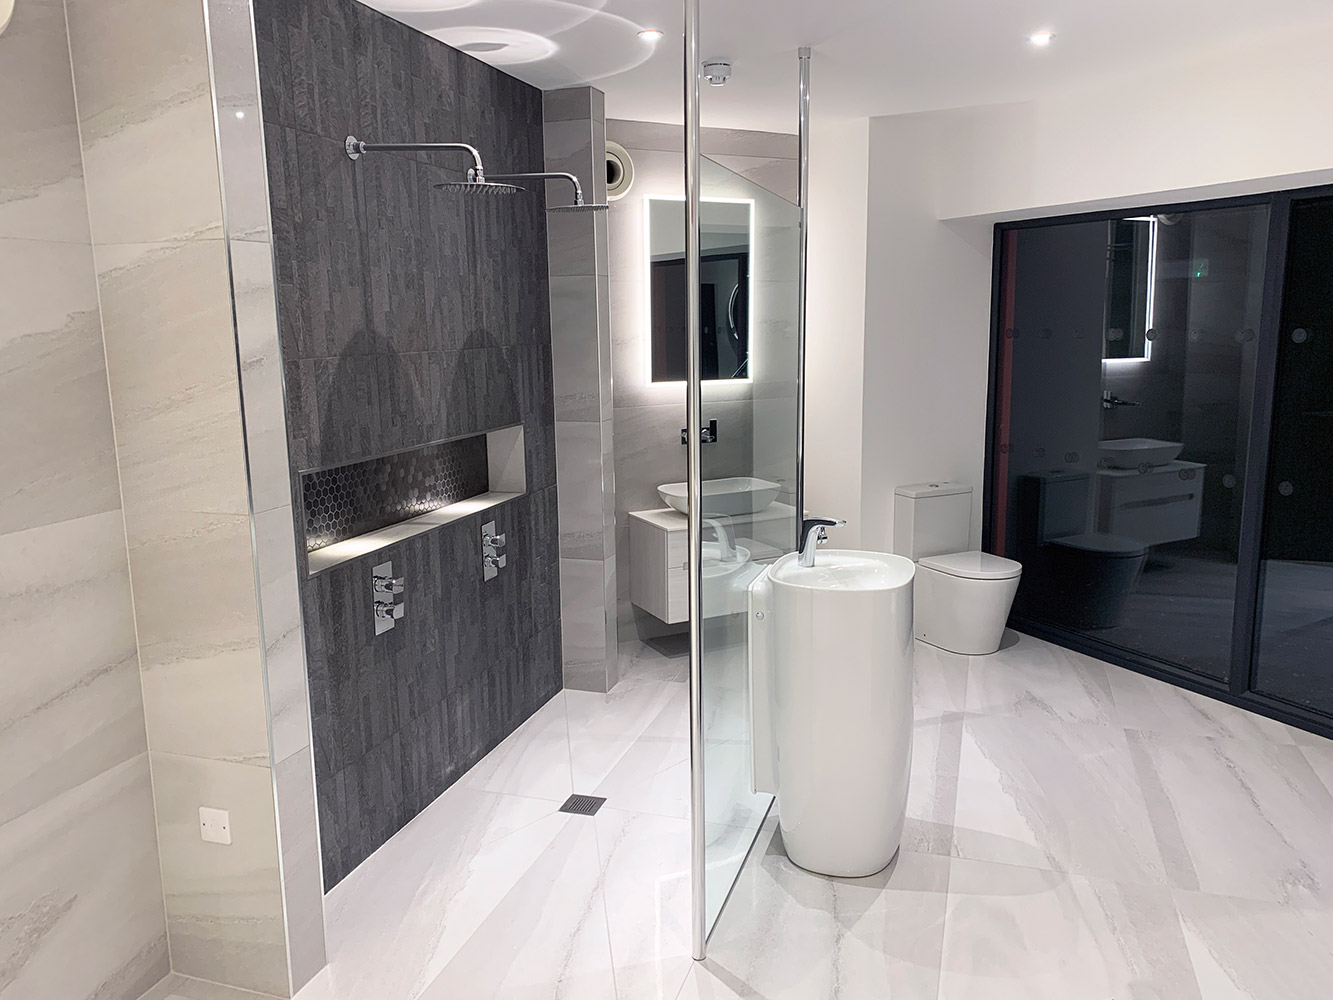 Bathroom Showroom Aberdeen: Bathroom Gallery 6, Photo 1